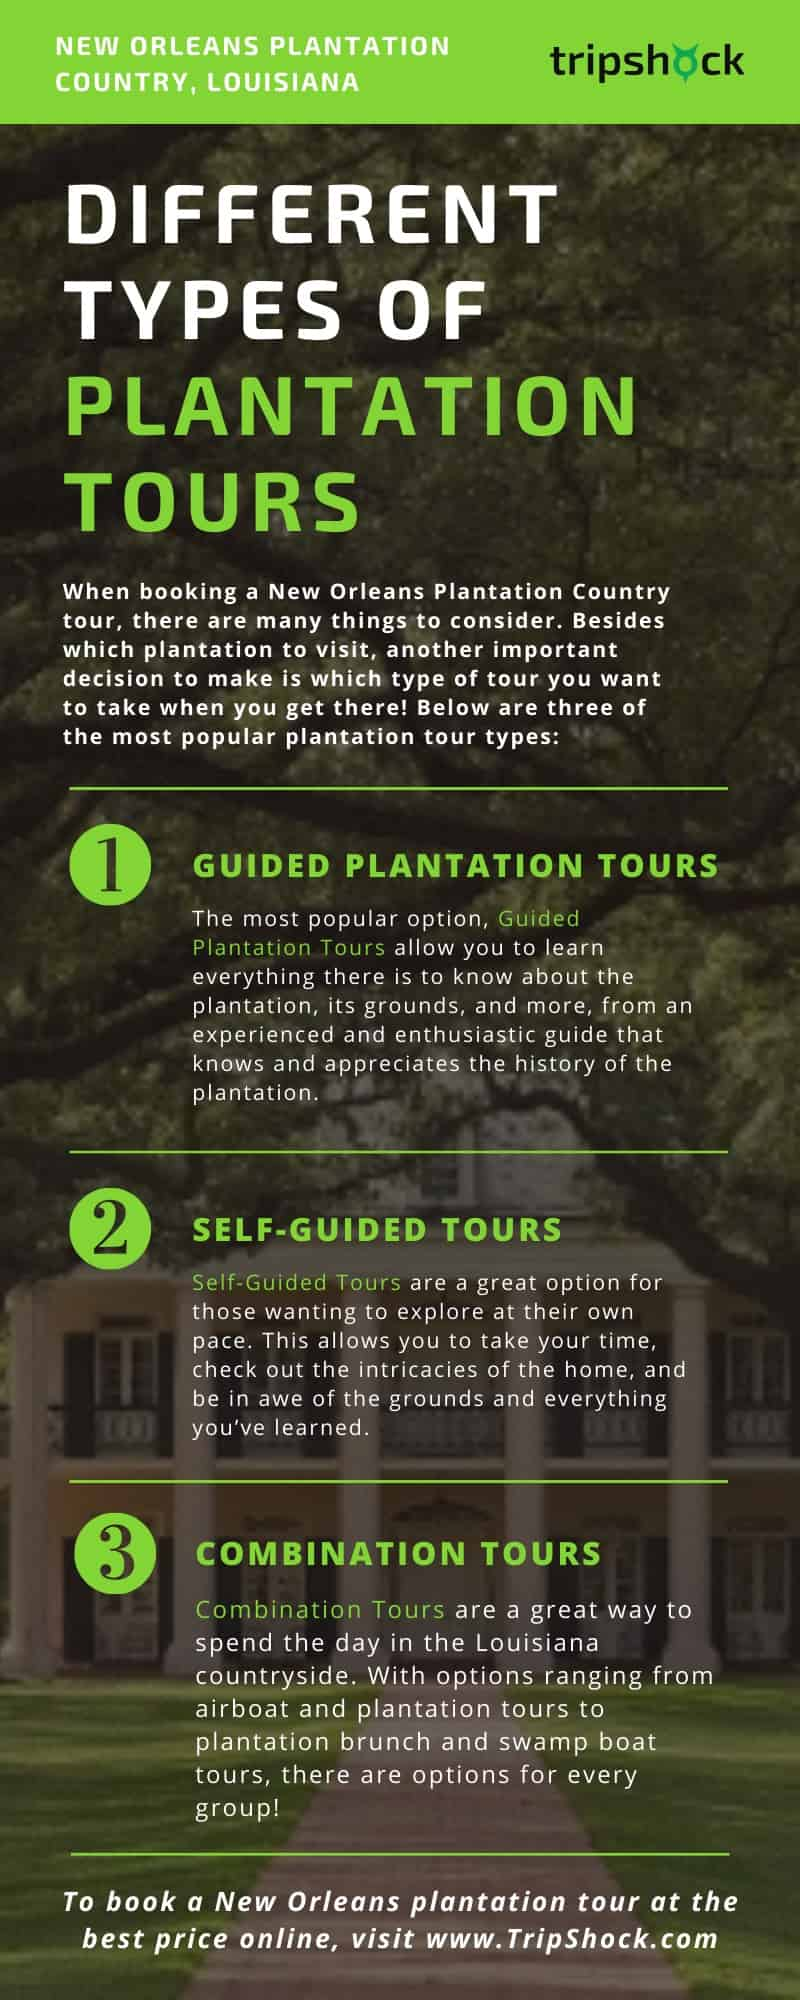 different types of new orleans plantation tours